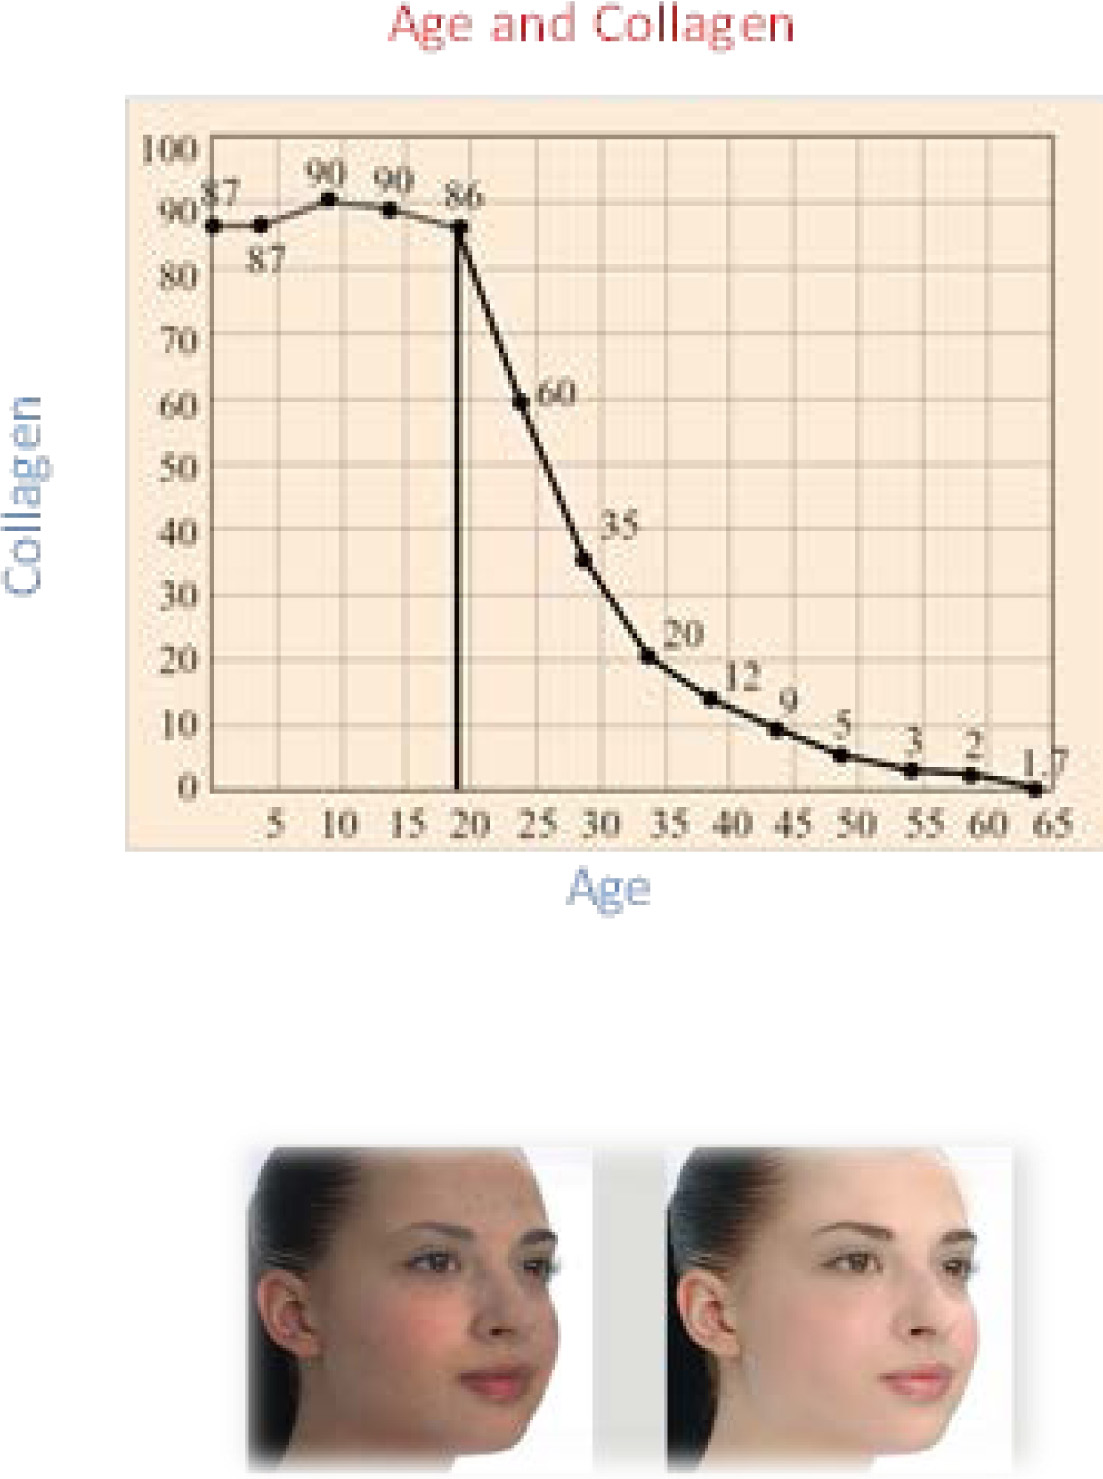 Age and Collagen